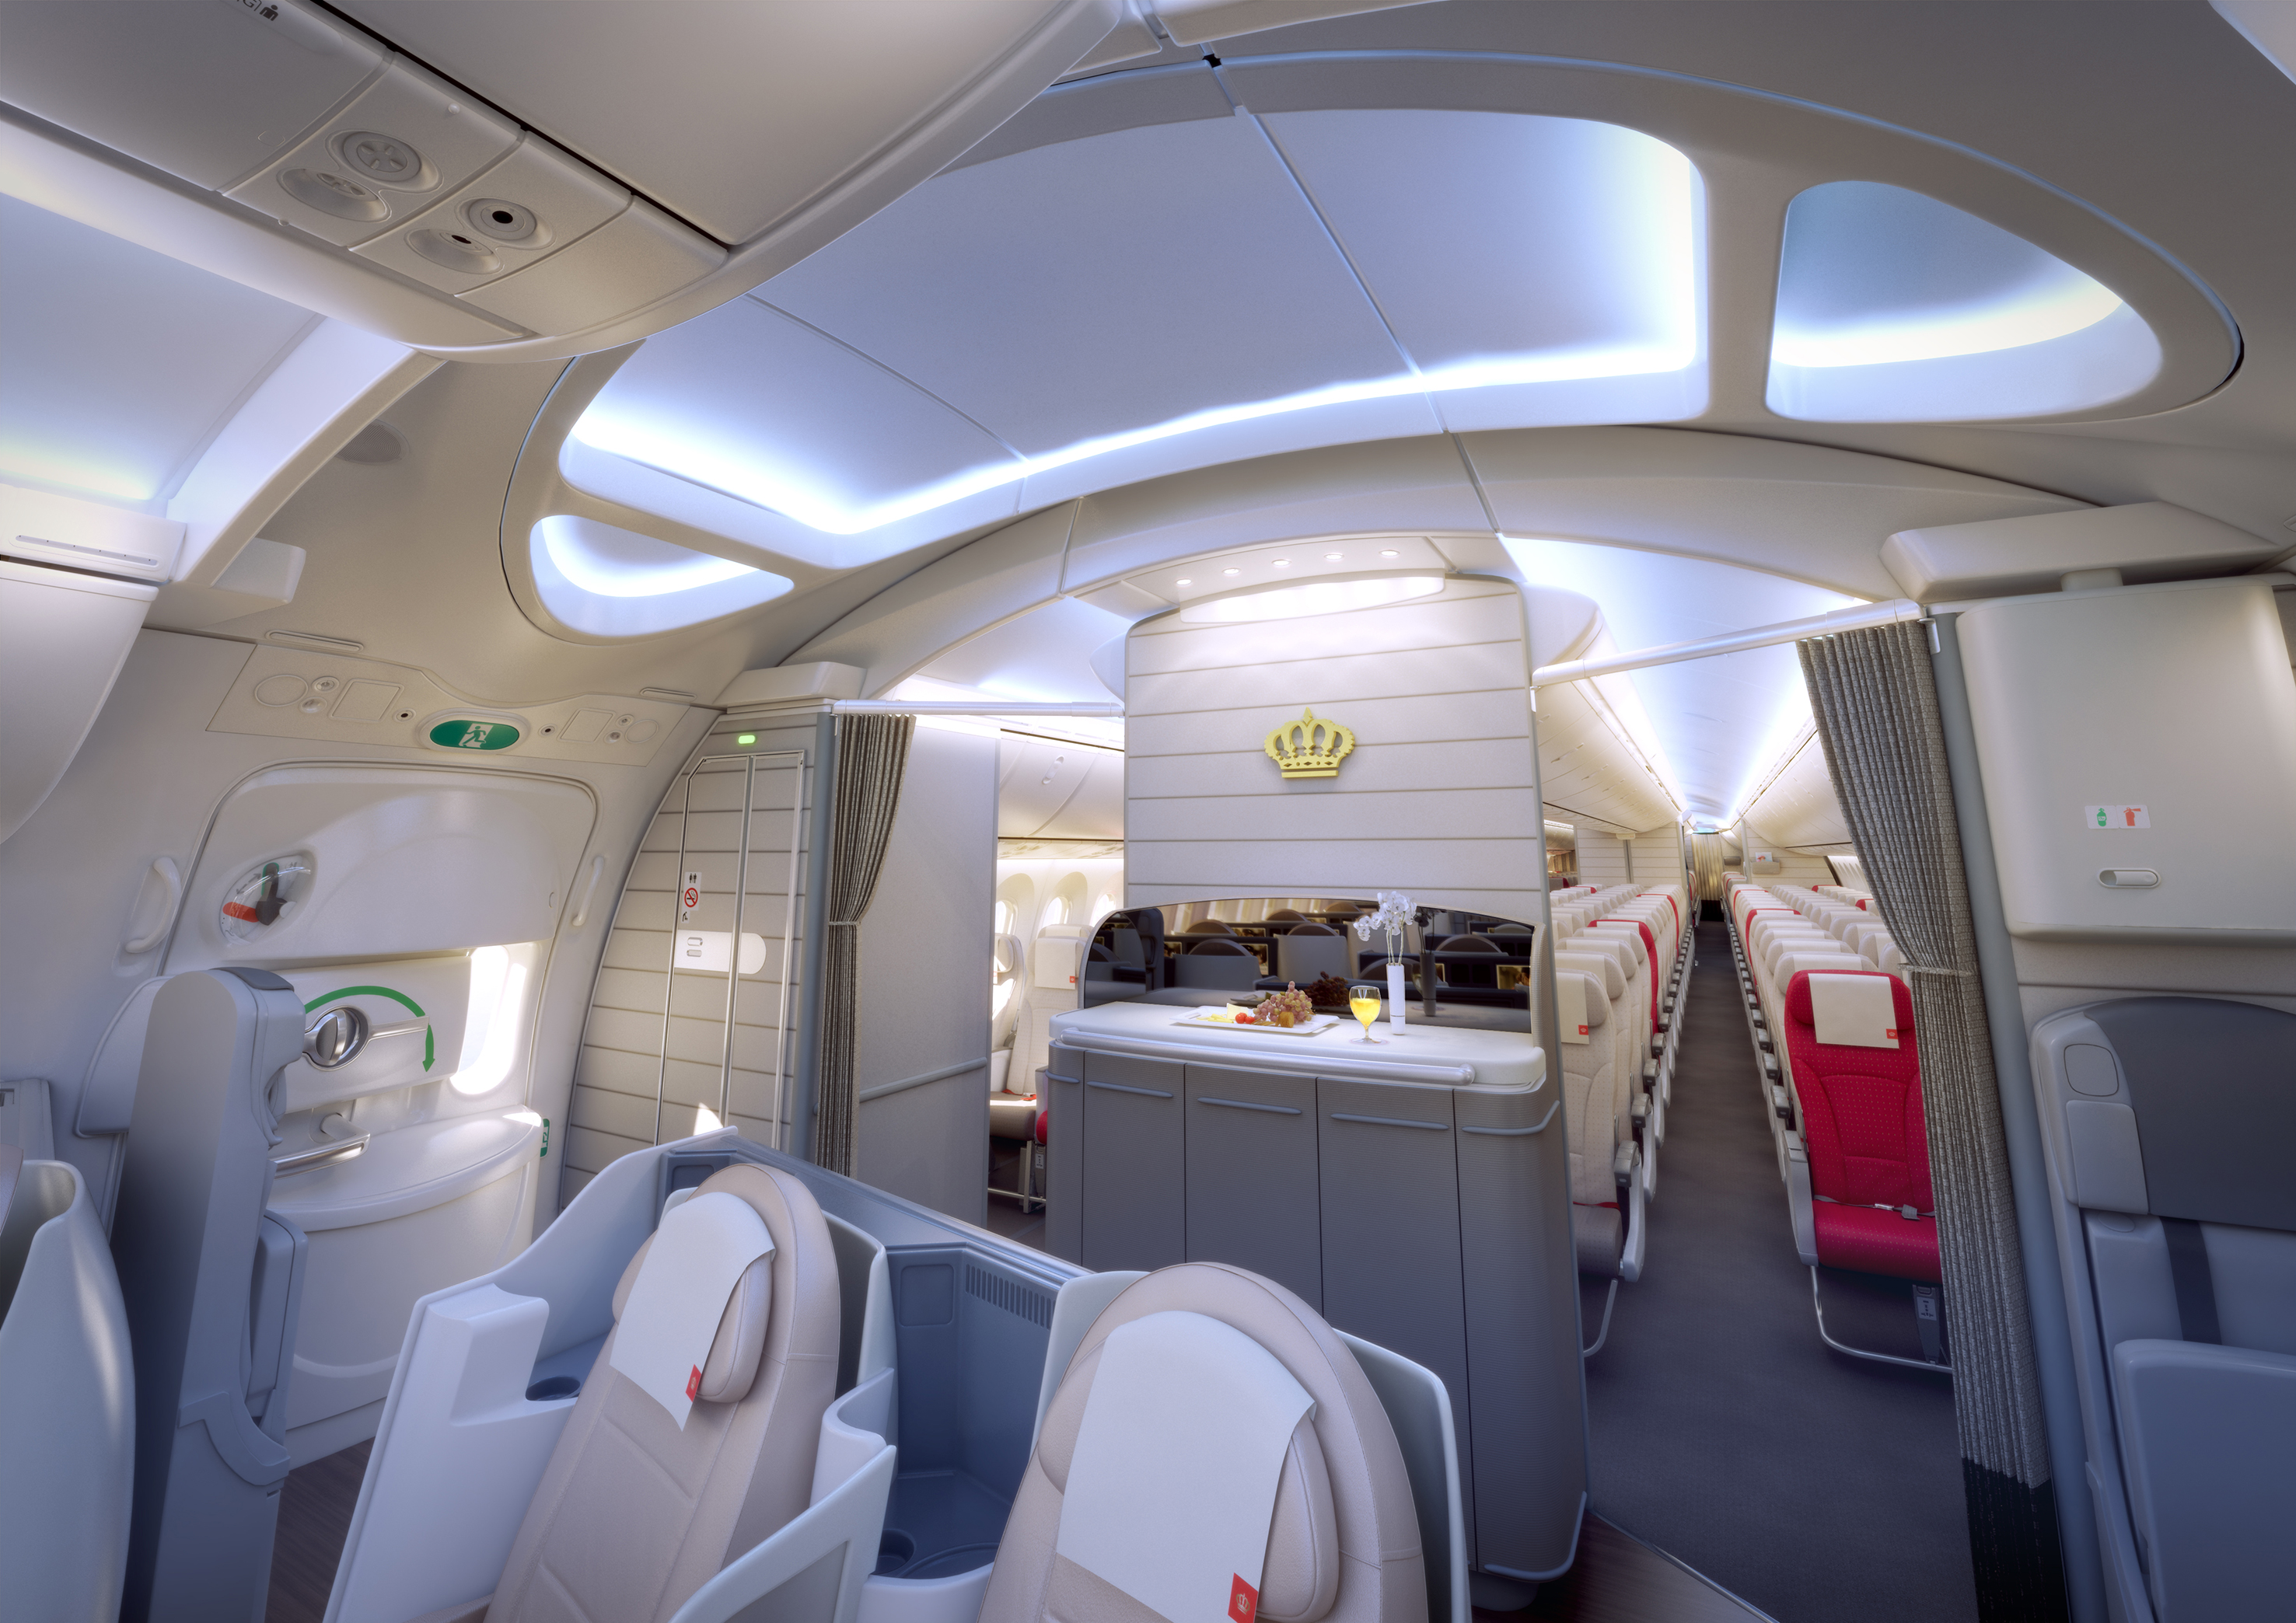 Royal Jordanian S 787 Offers Understated Luxury Thedesignair